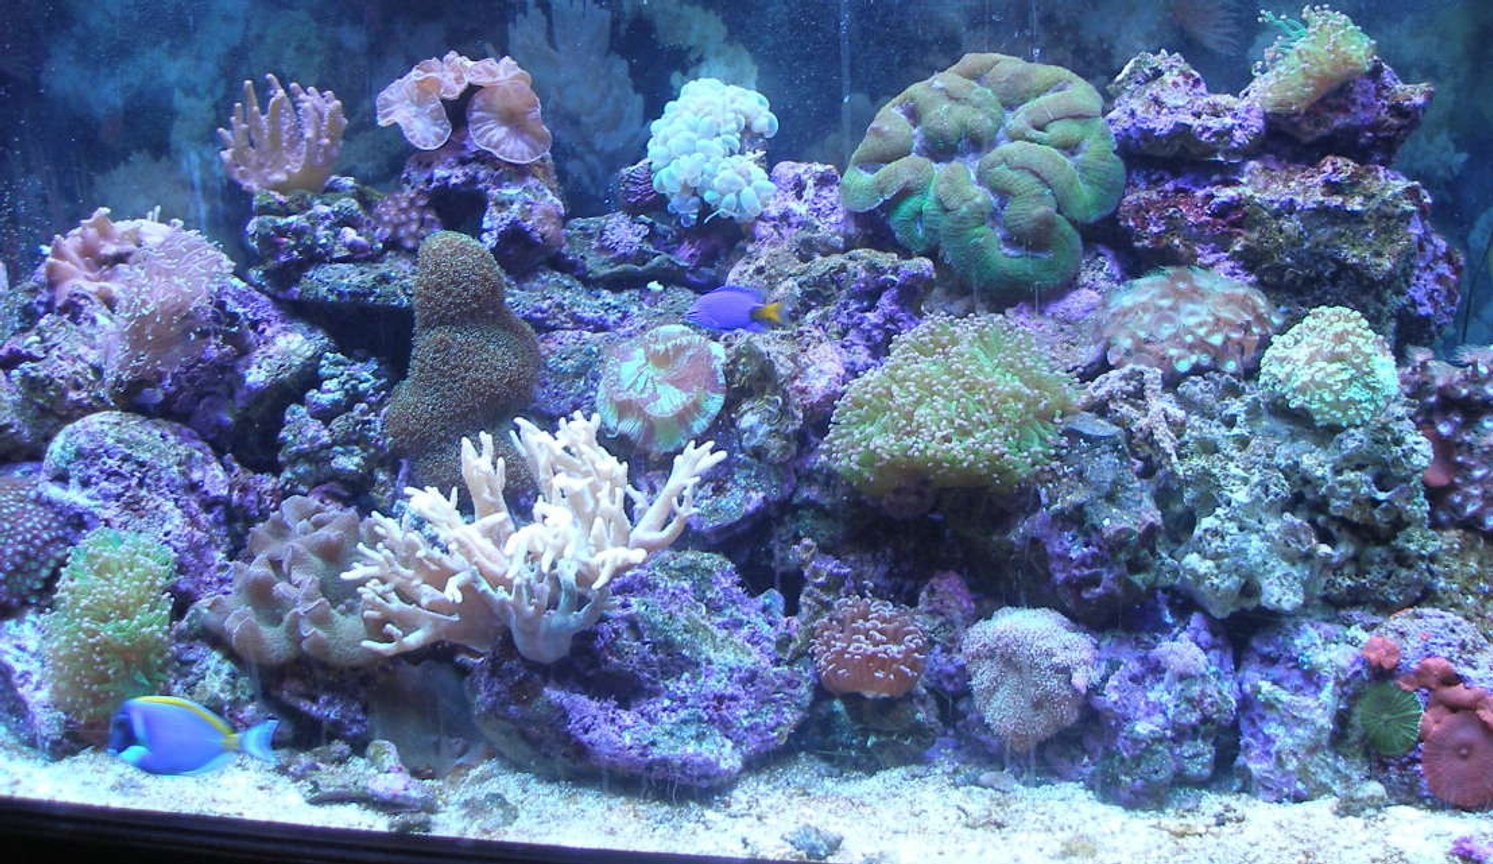 90 gallons reef tank (mostly live coral and fish) - 90 gal. Reef Tank w/Powder Blue Tang, Yellow Tail Damsel, Coral Beauty, Blue/Green Chromis. LPS, Leathers, Soft Corals & Mushrooms